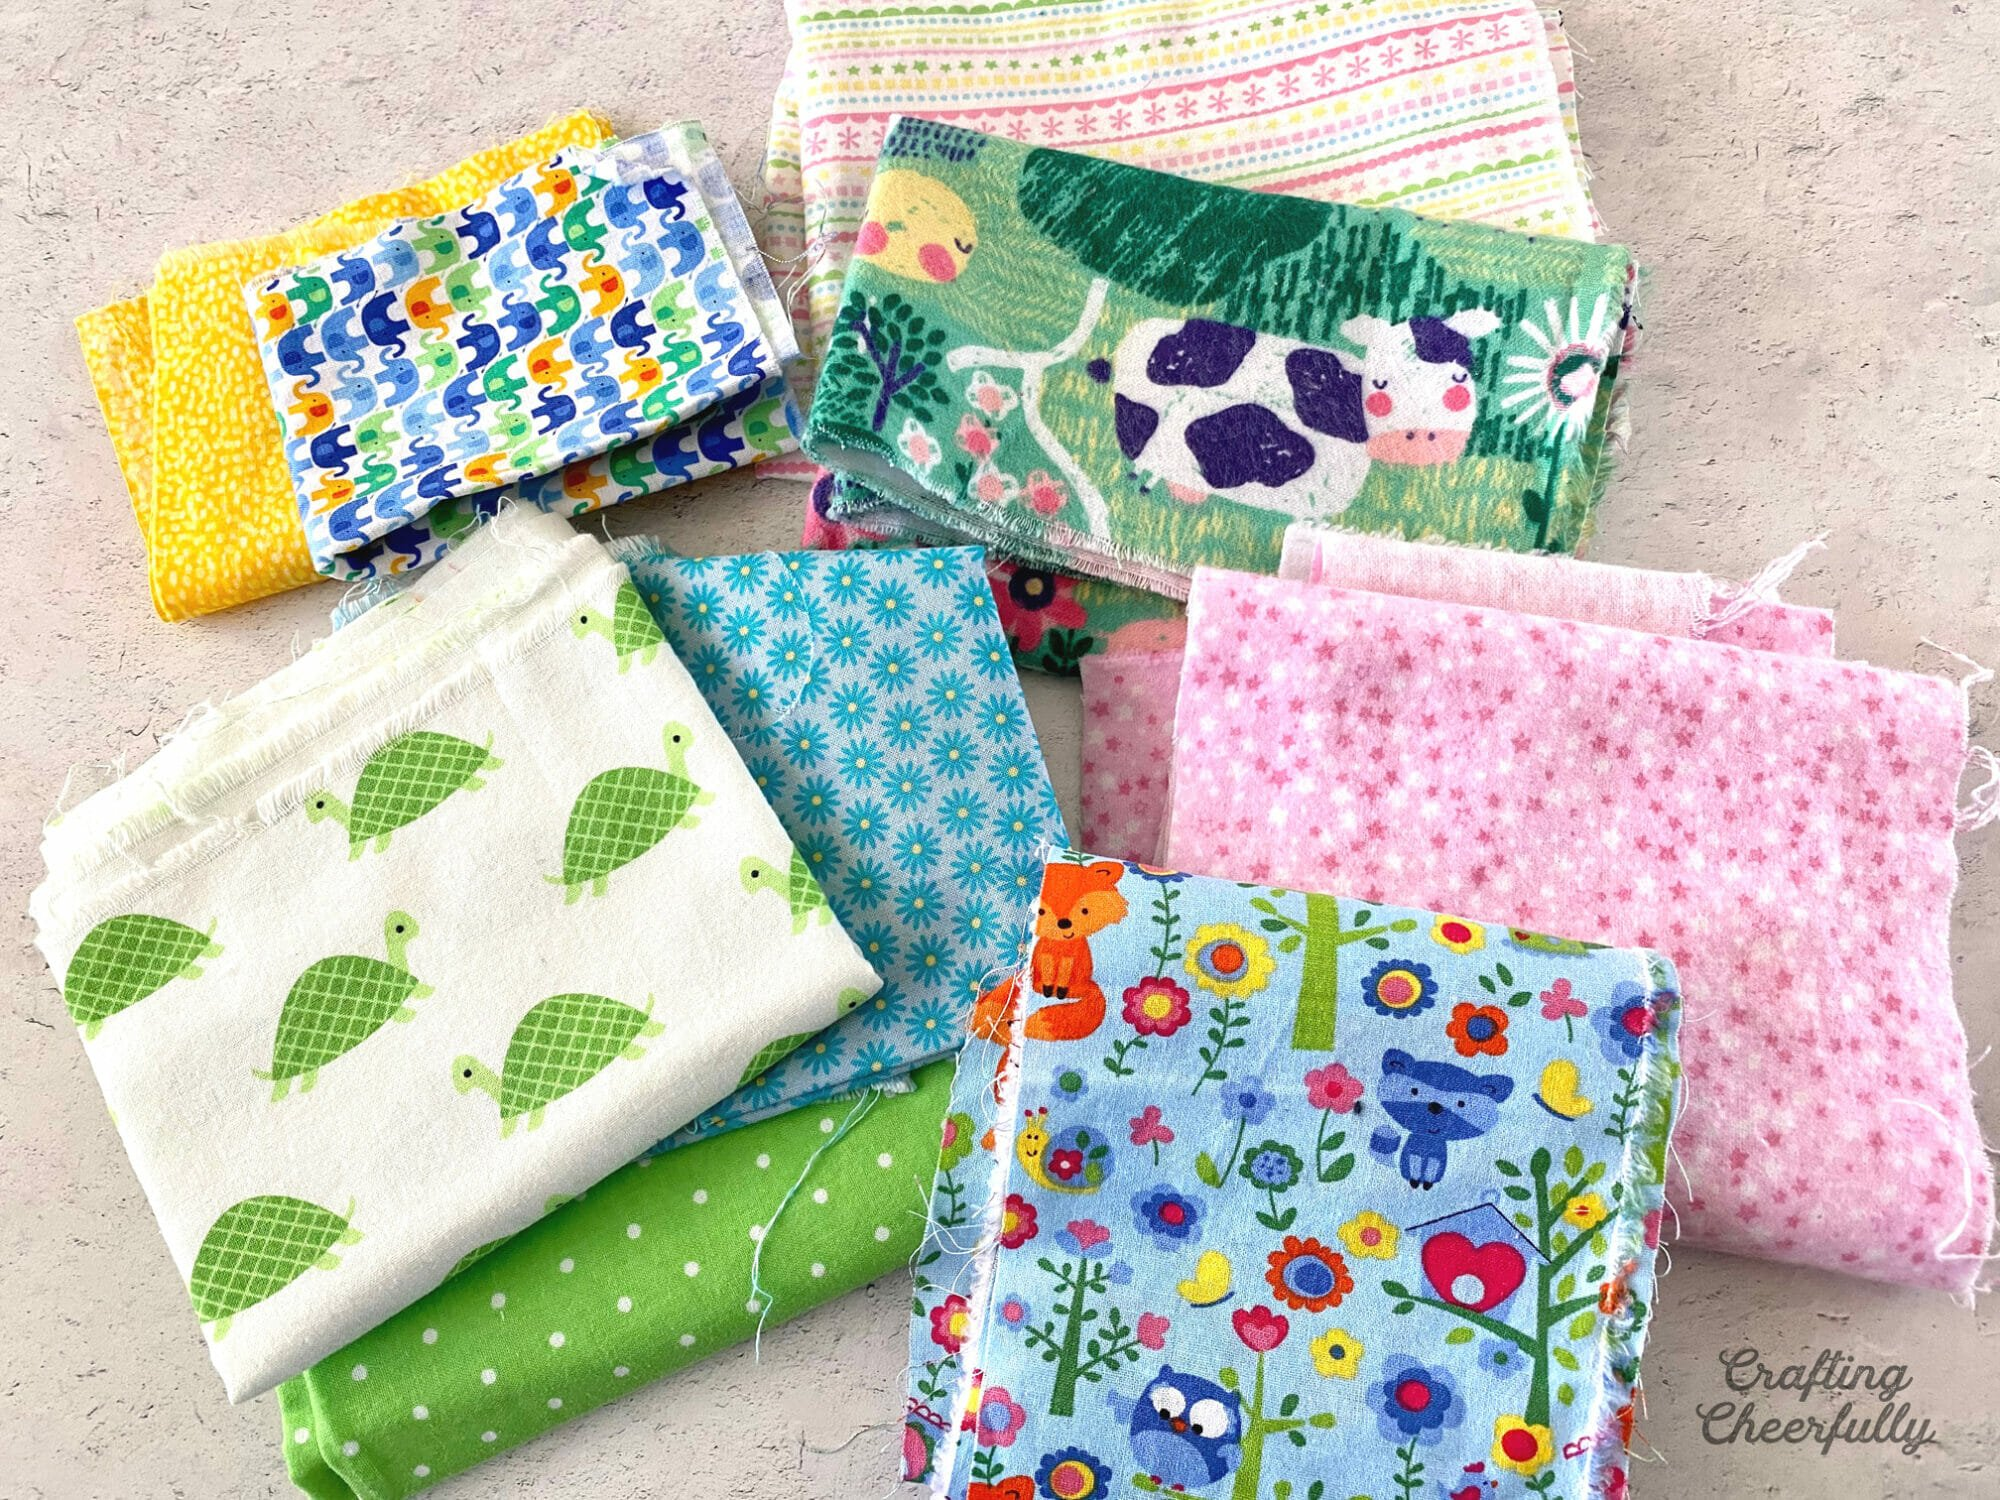 Cotton fabric with cute prints.